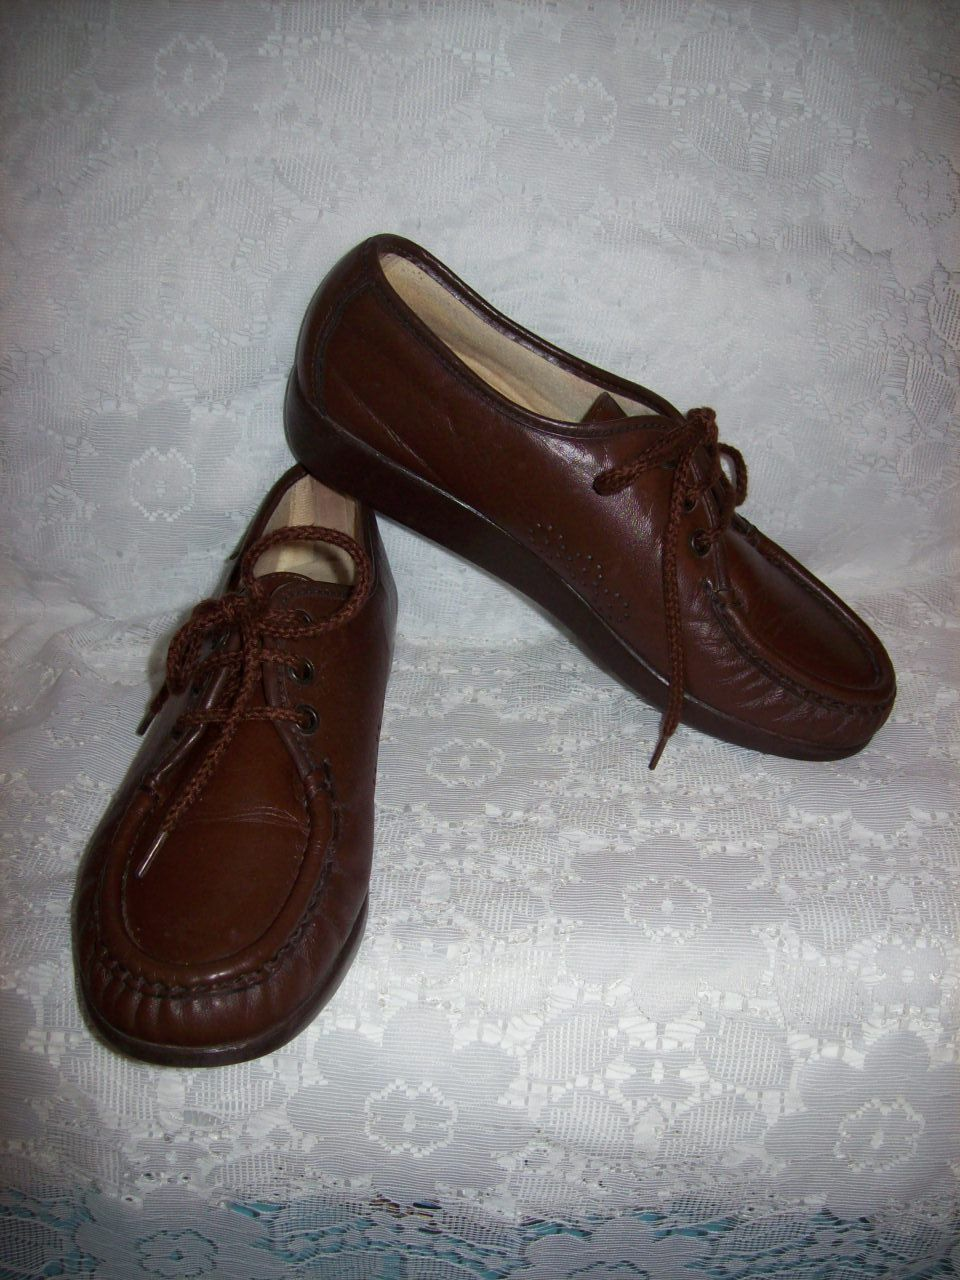 Vintage Ladies Brown Leather Oxfords Granny Shoes by SAS Size 7 Only 6 USD by SusOriginals on Etsy